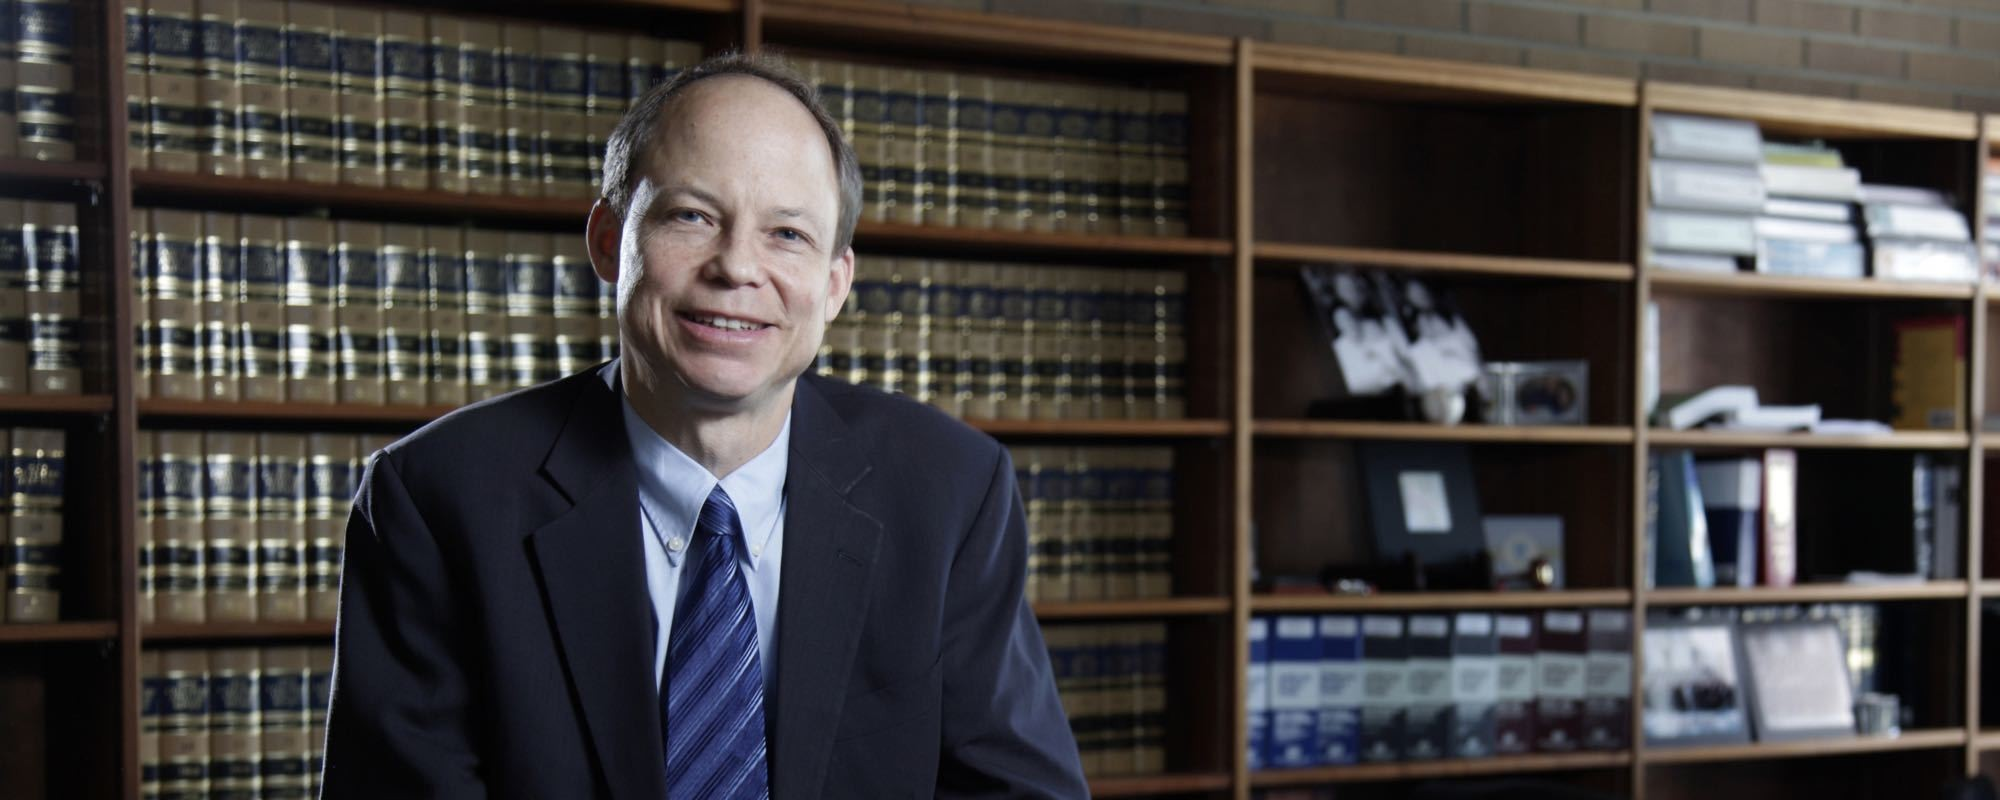 Stanford rape case judge recuses himself from all criminal cases